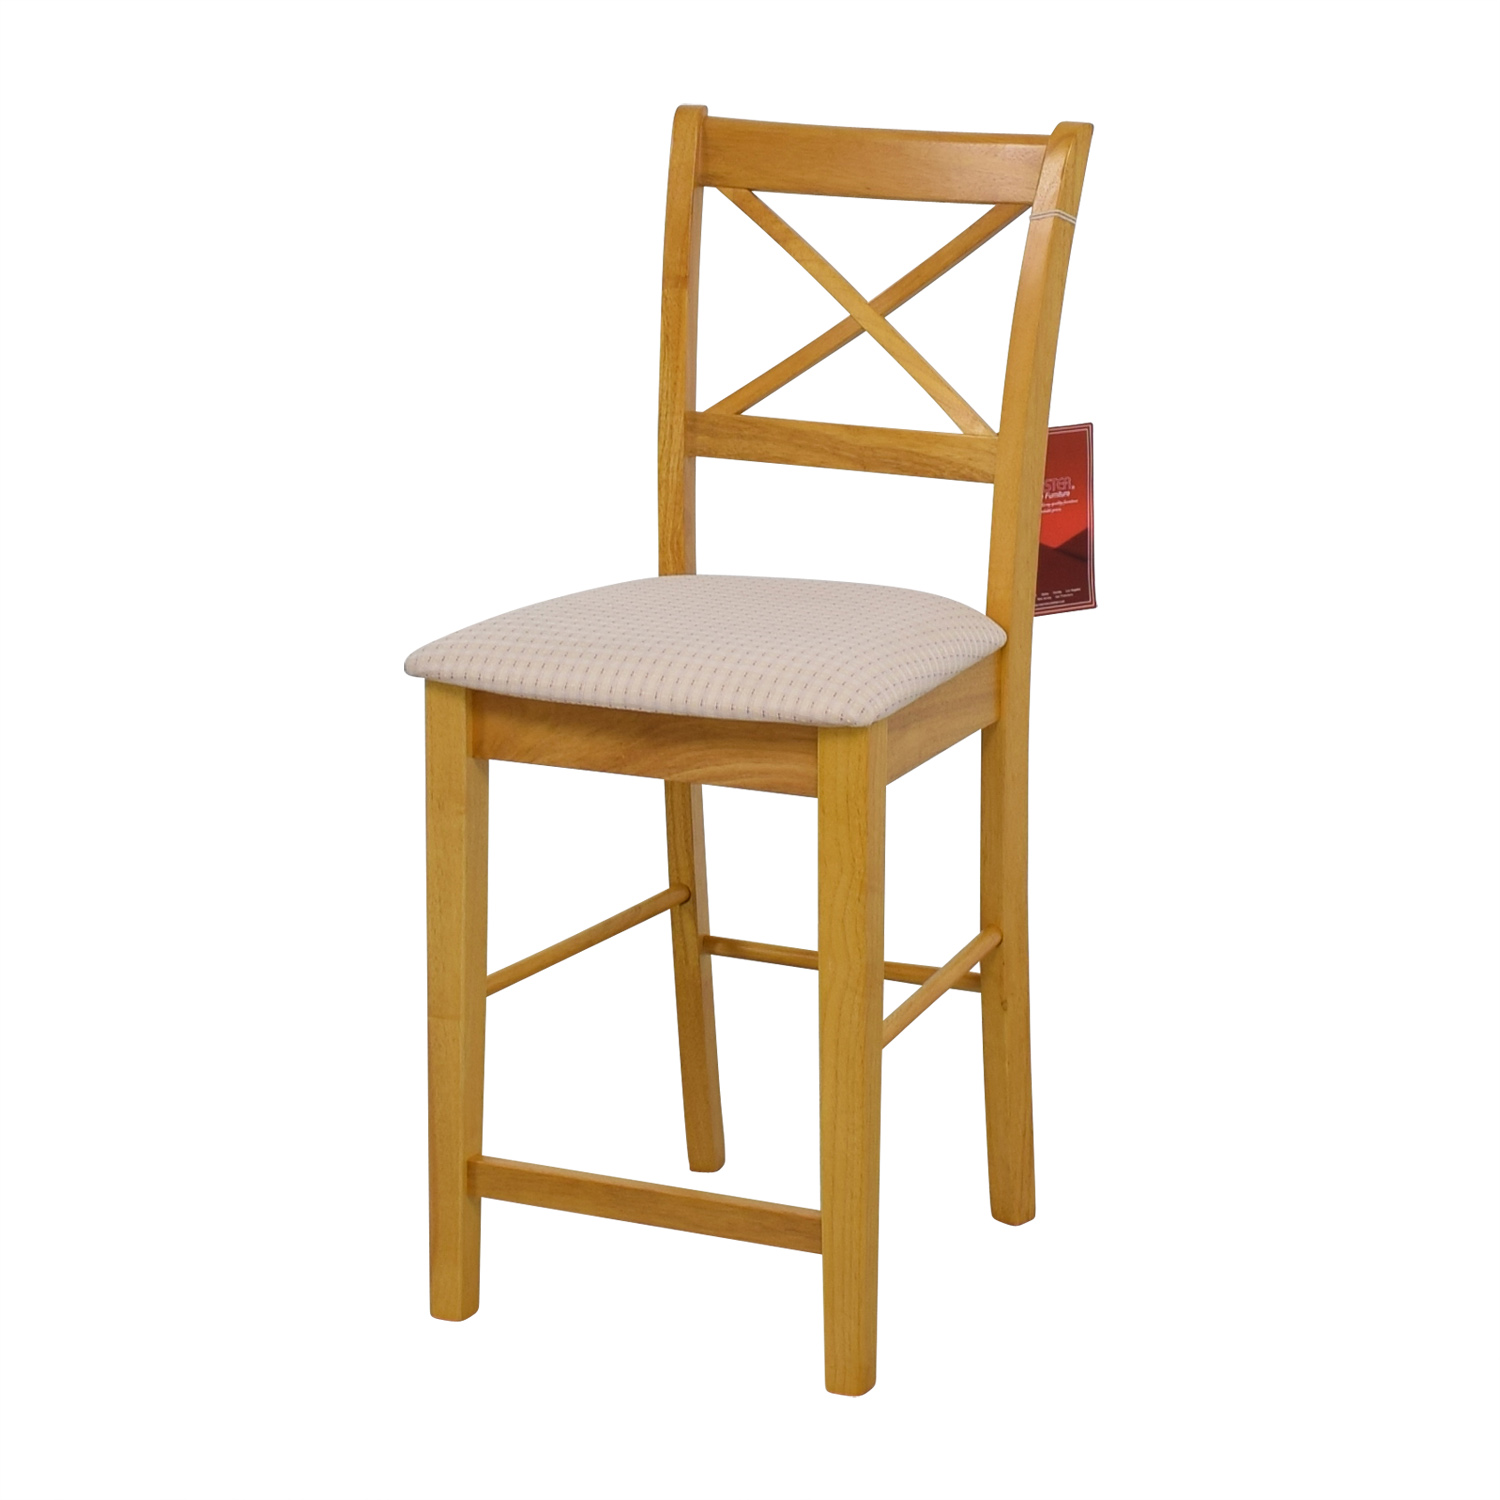 Coaster Coaster Maple Counter Height Chair with Padded Seat price